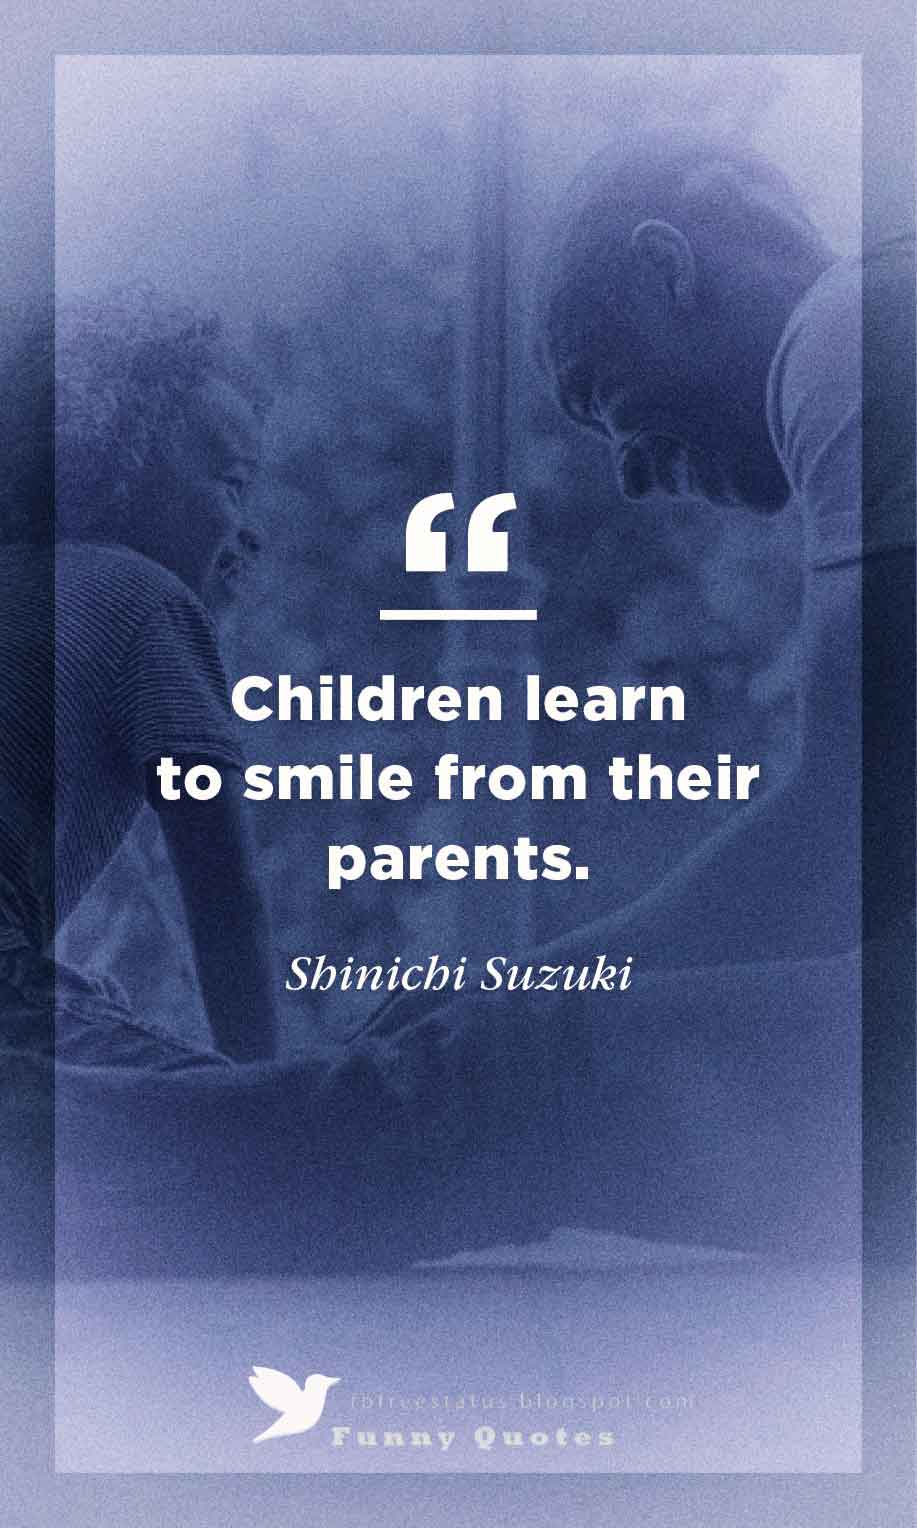 """Children learn to smile from their parents."" - Shinichi Suzuki"